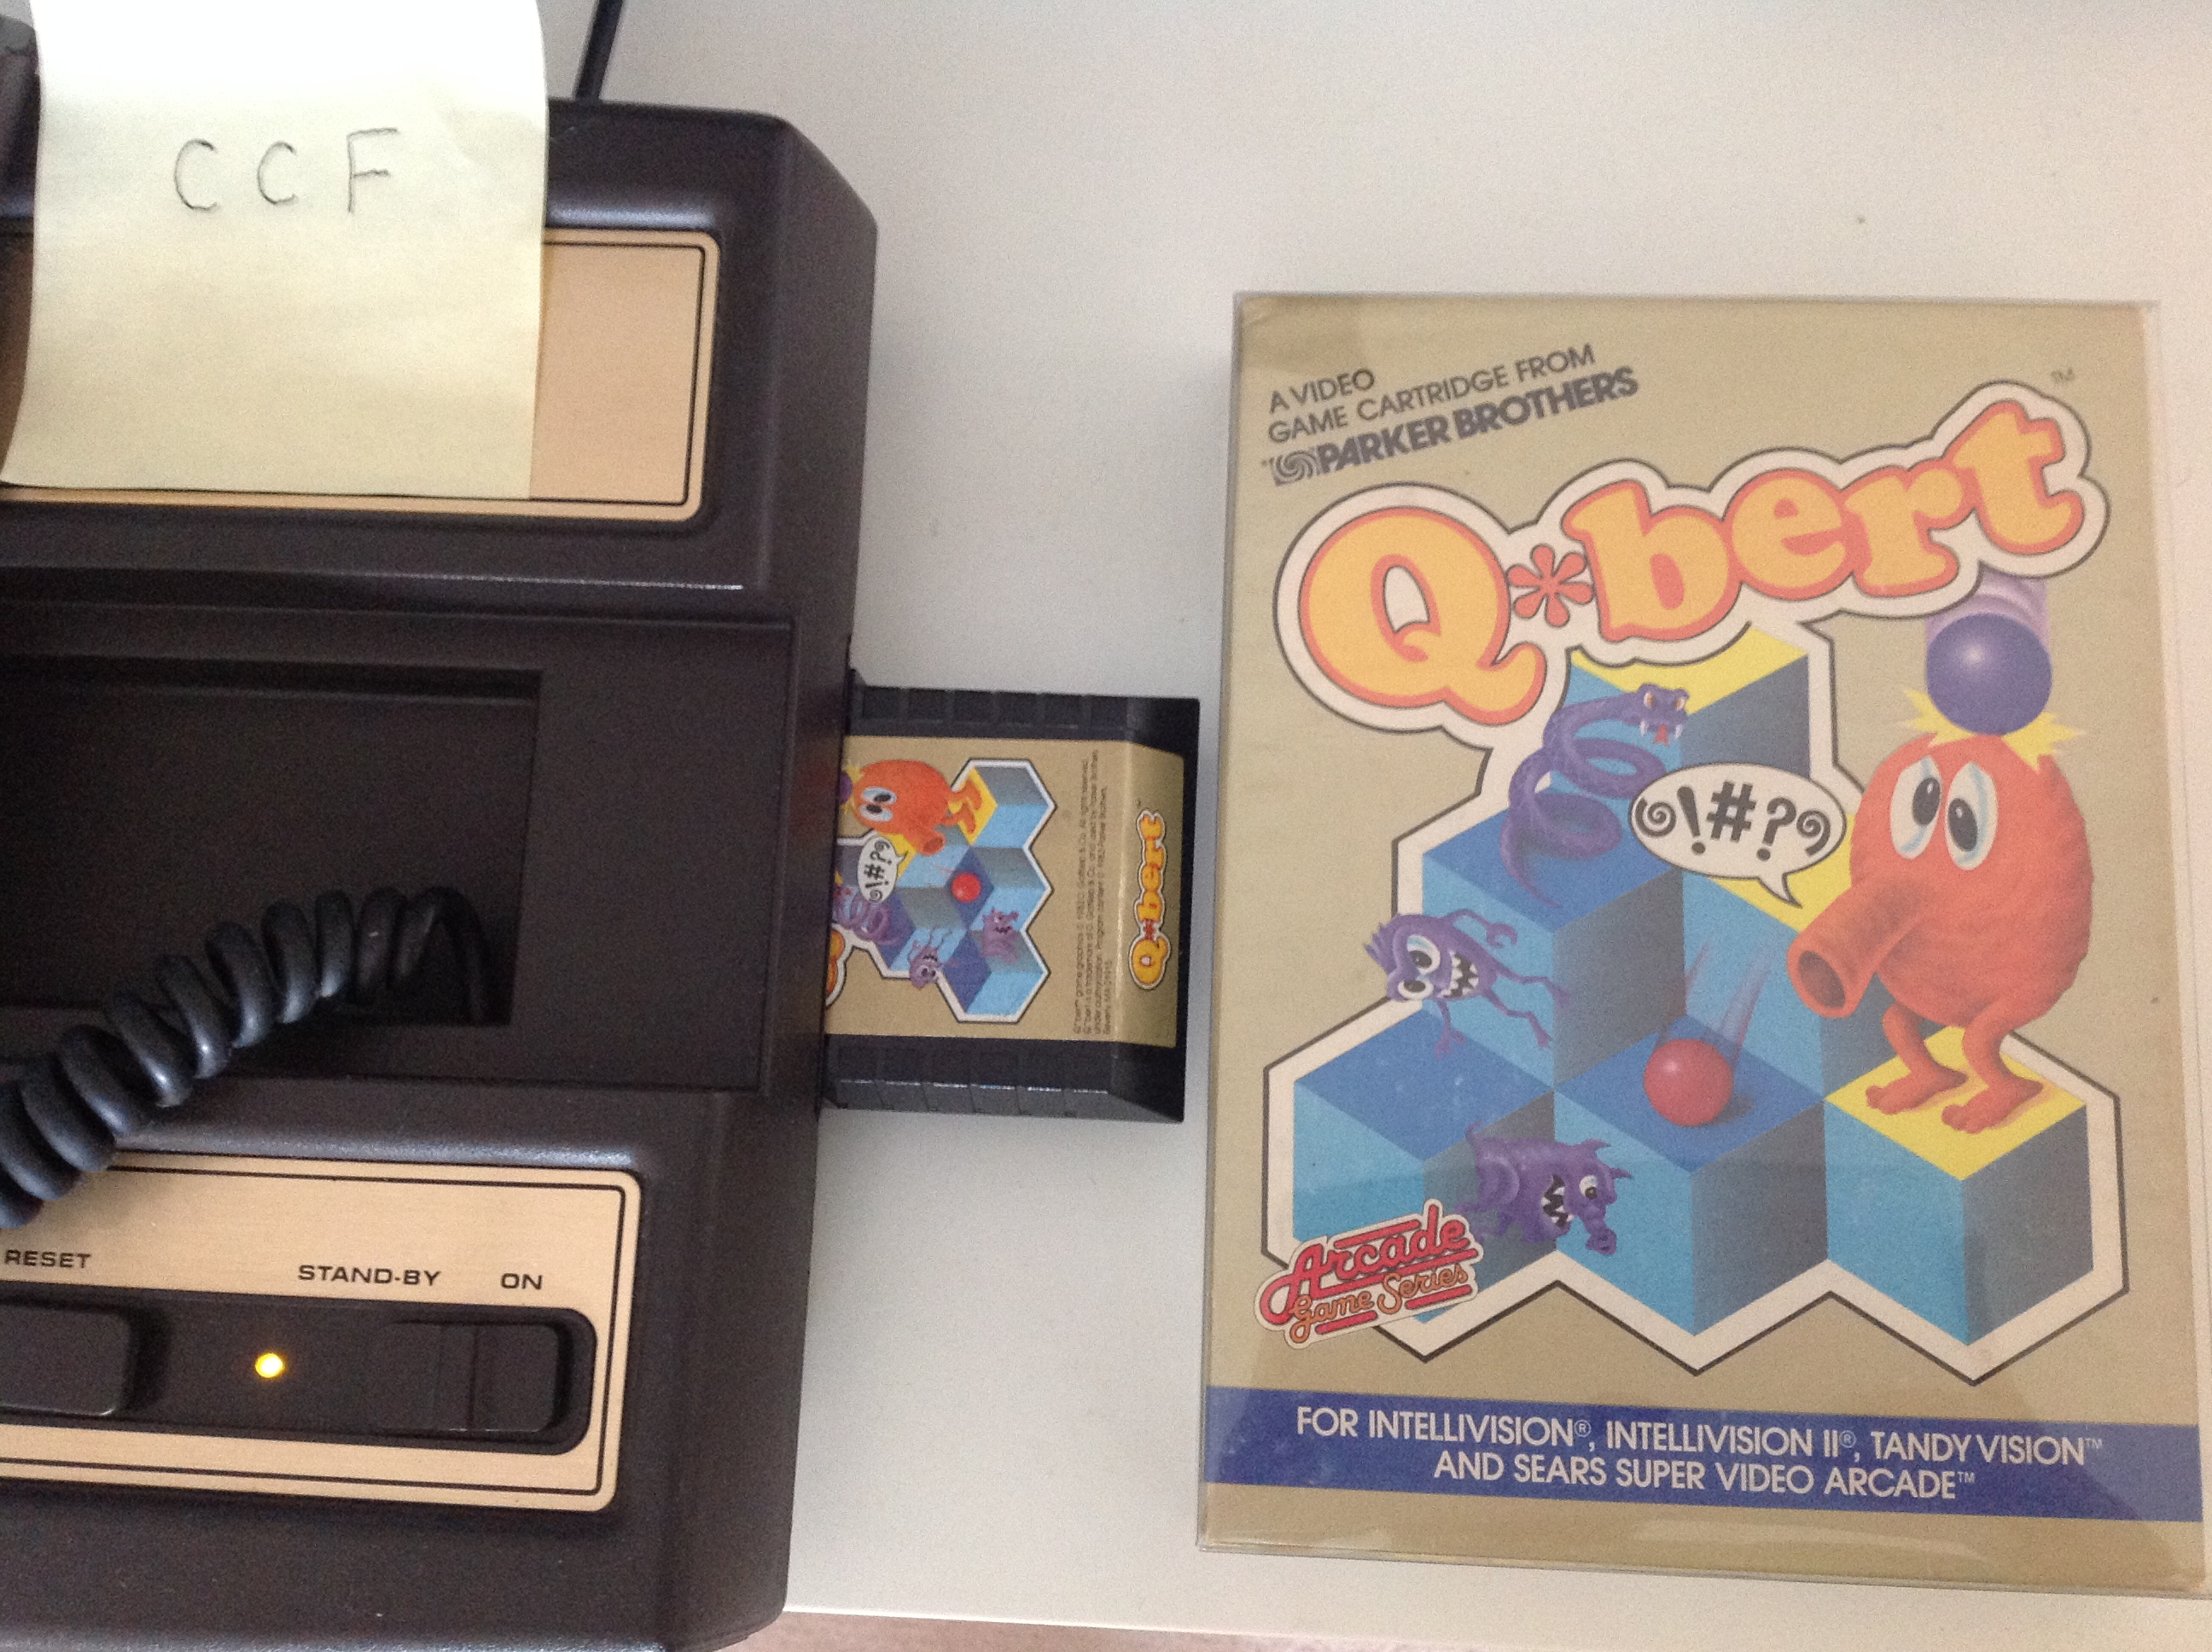 CoCoForest: Q*Bert (Intellivision) 78,430 points on 2018-08-18 03:35:18